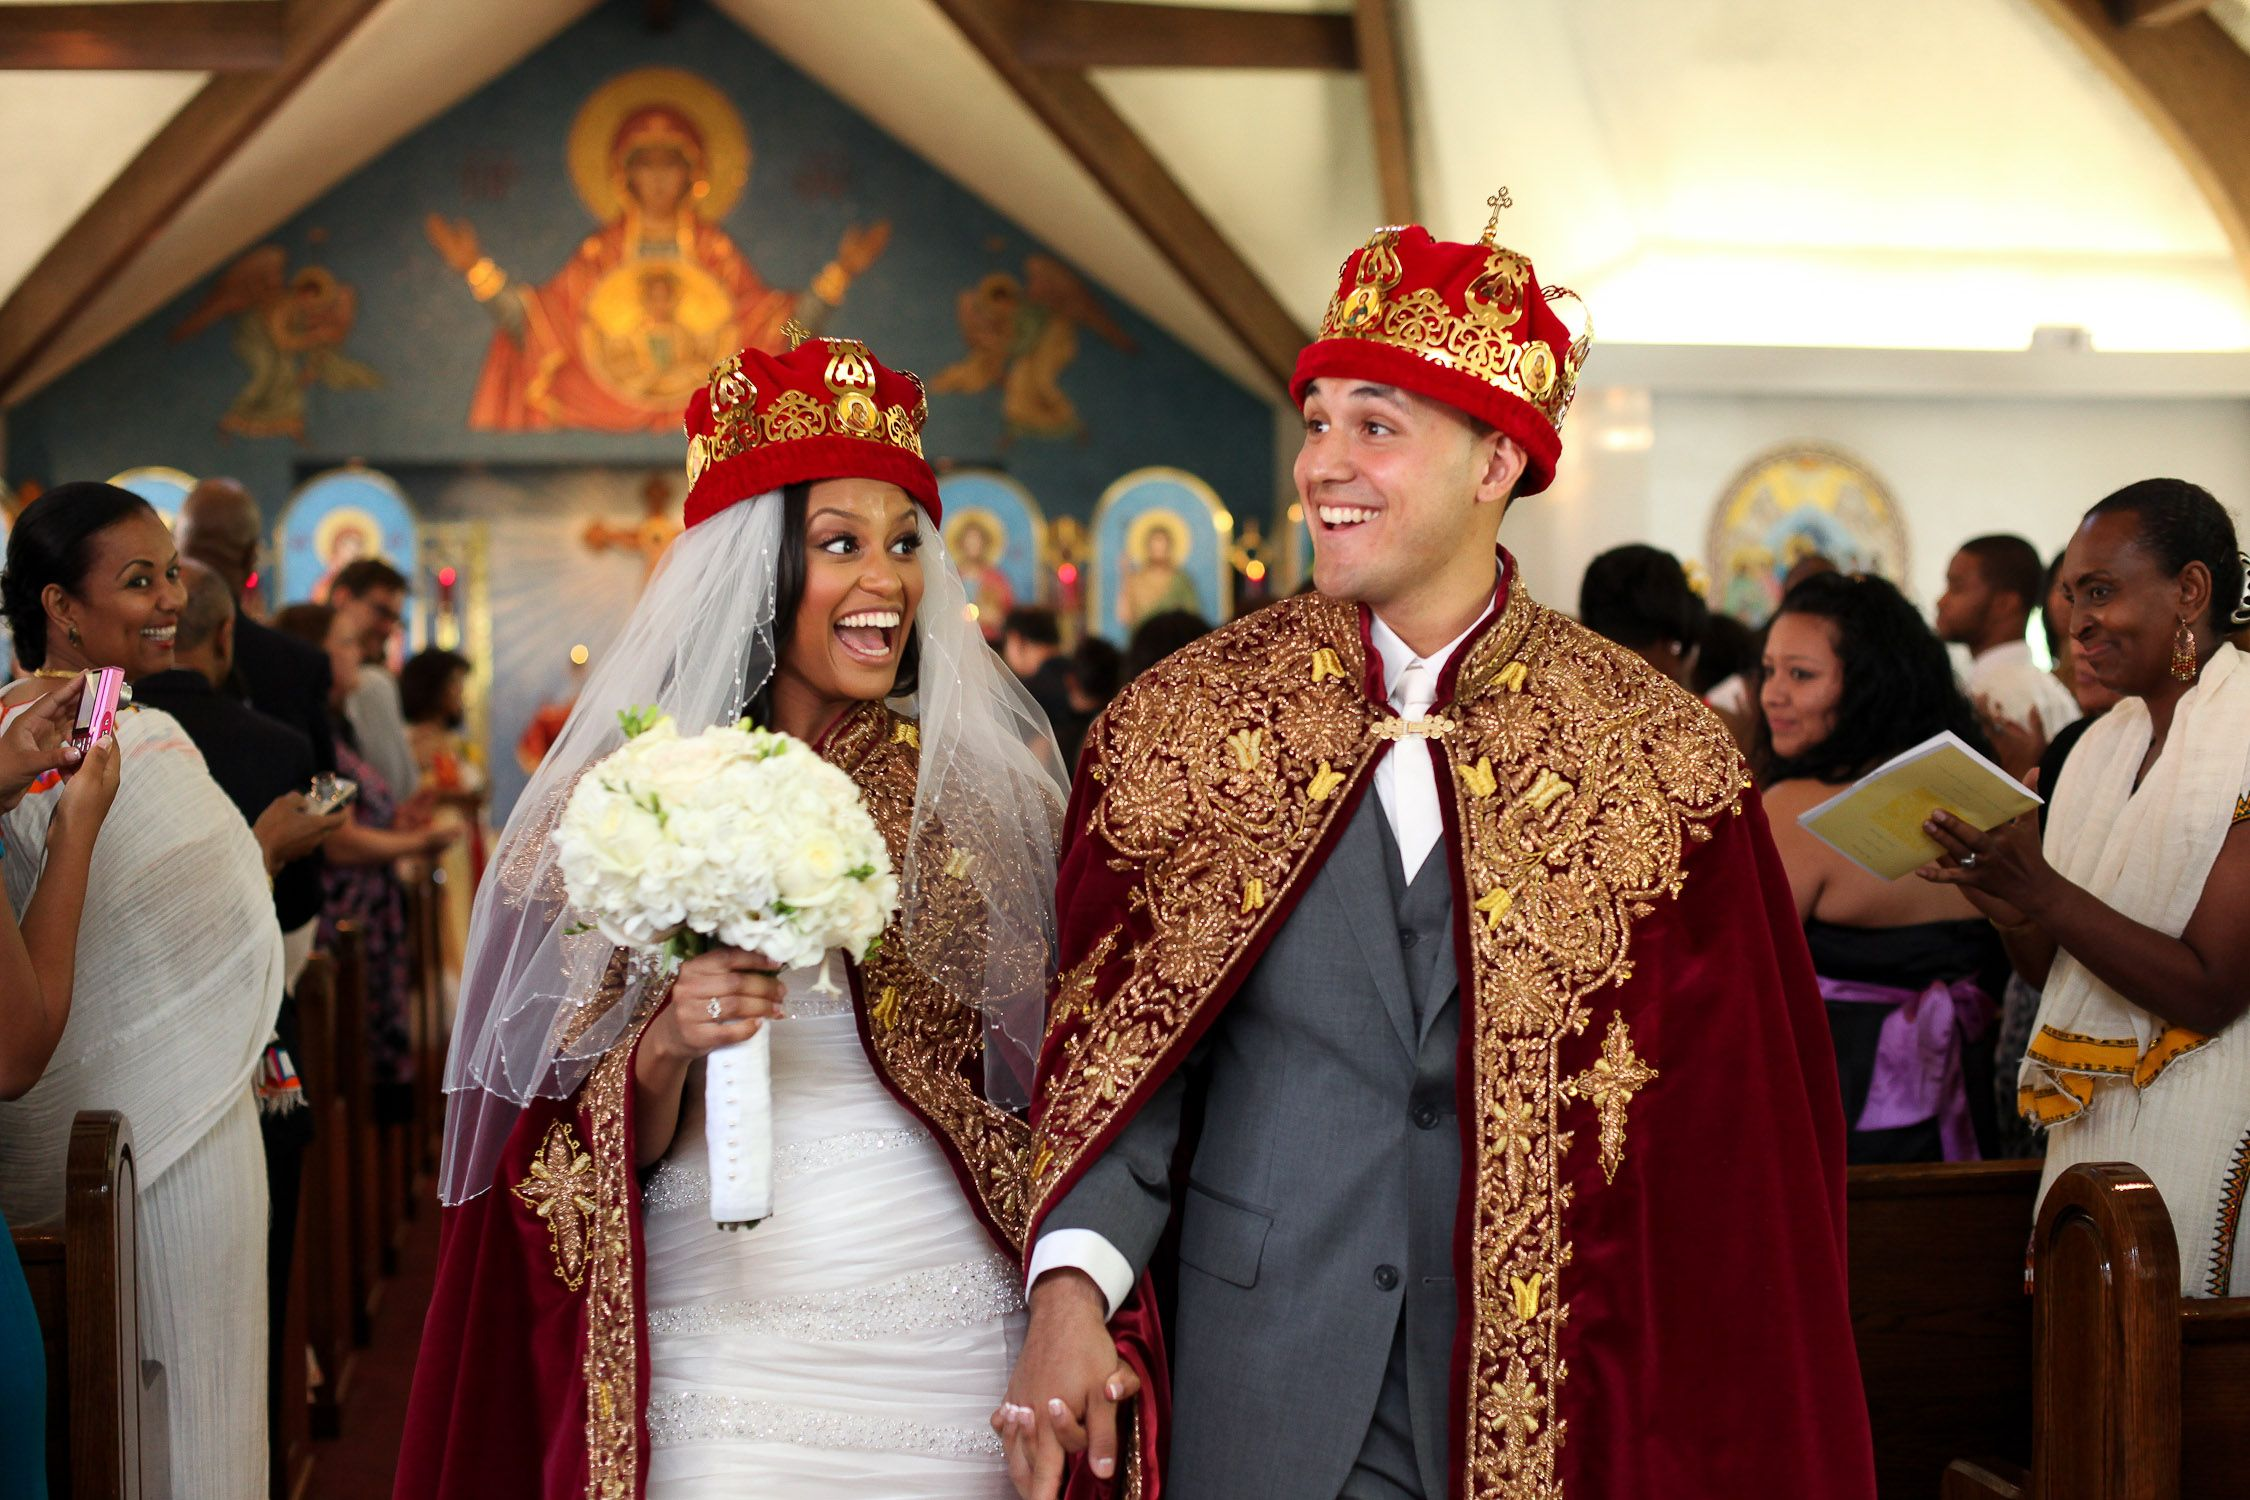 Glenview-Mansion-Maryland-Ethiopian-Wedding-Ceremony-Recessional ...